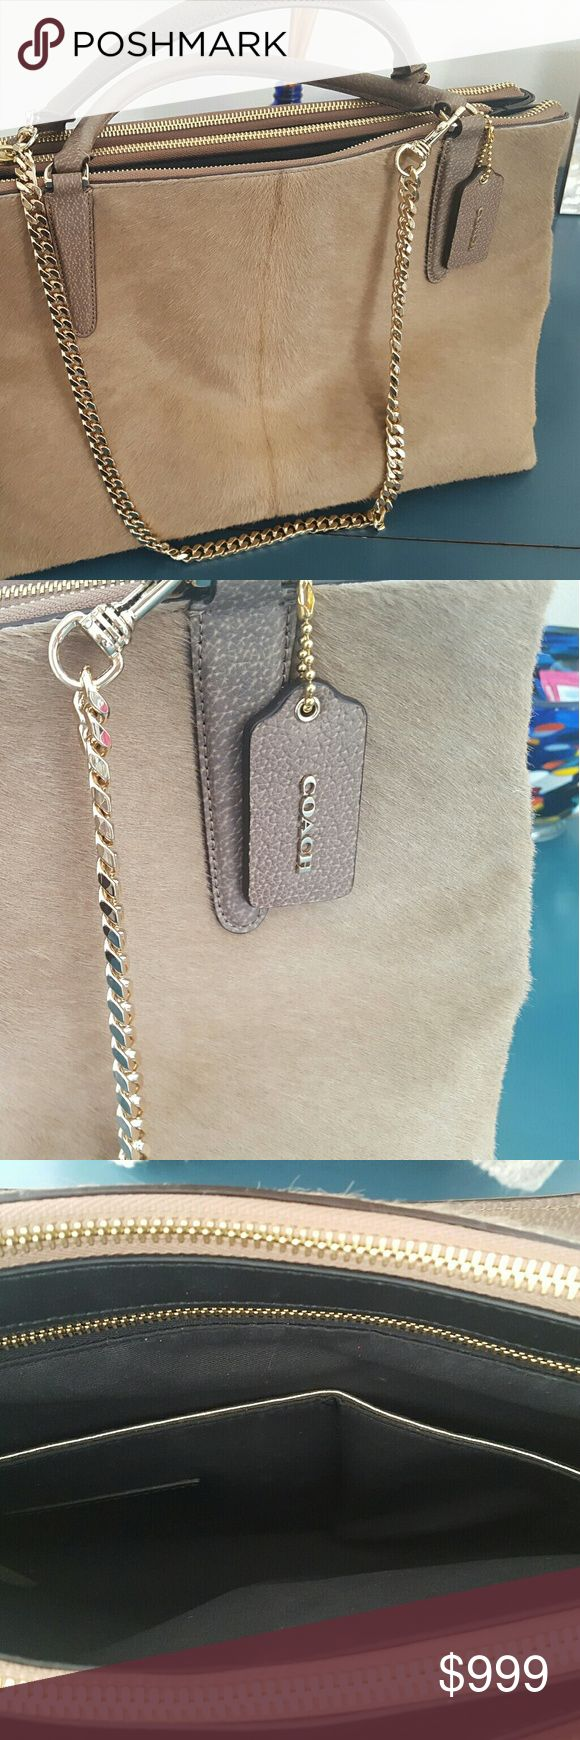 Coach Borough bag Natural Haircalf Coach haircalf bag, as new. Very gently carried a handful of times. Multiple zippered pockets and detachable chain. Natural tan color goes with everything. Coach Bags Totes